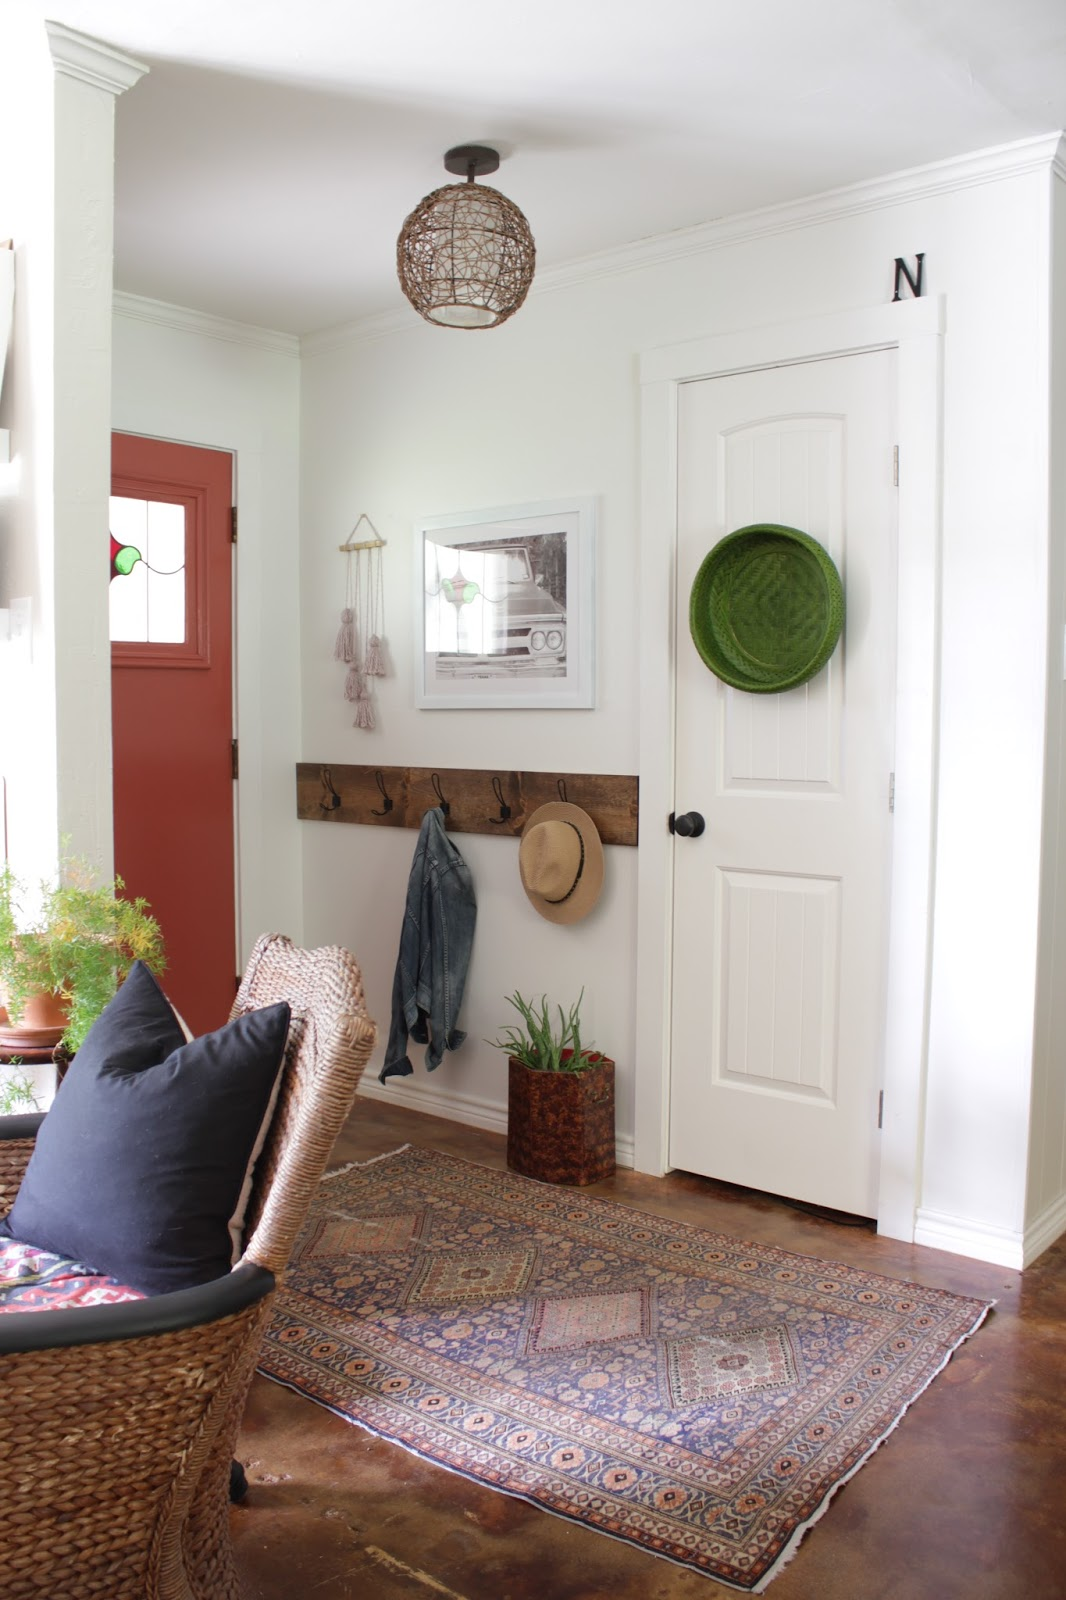 A quick entryway update! I sold what was in the space and redid it using the money I earned. Come see!